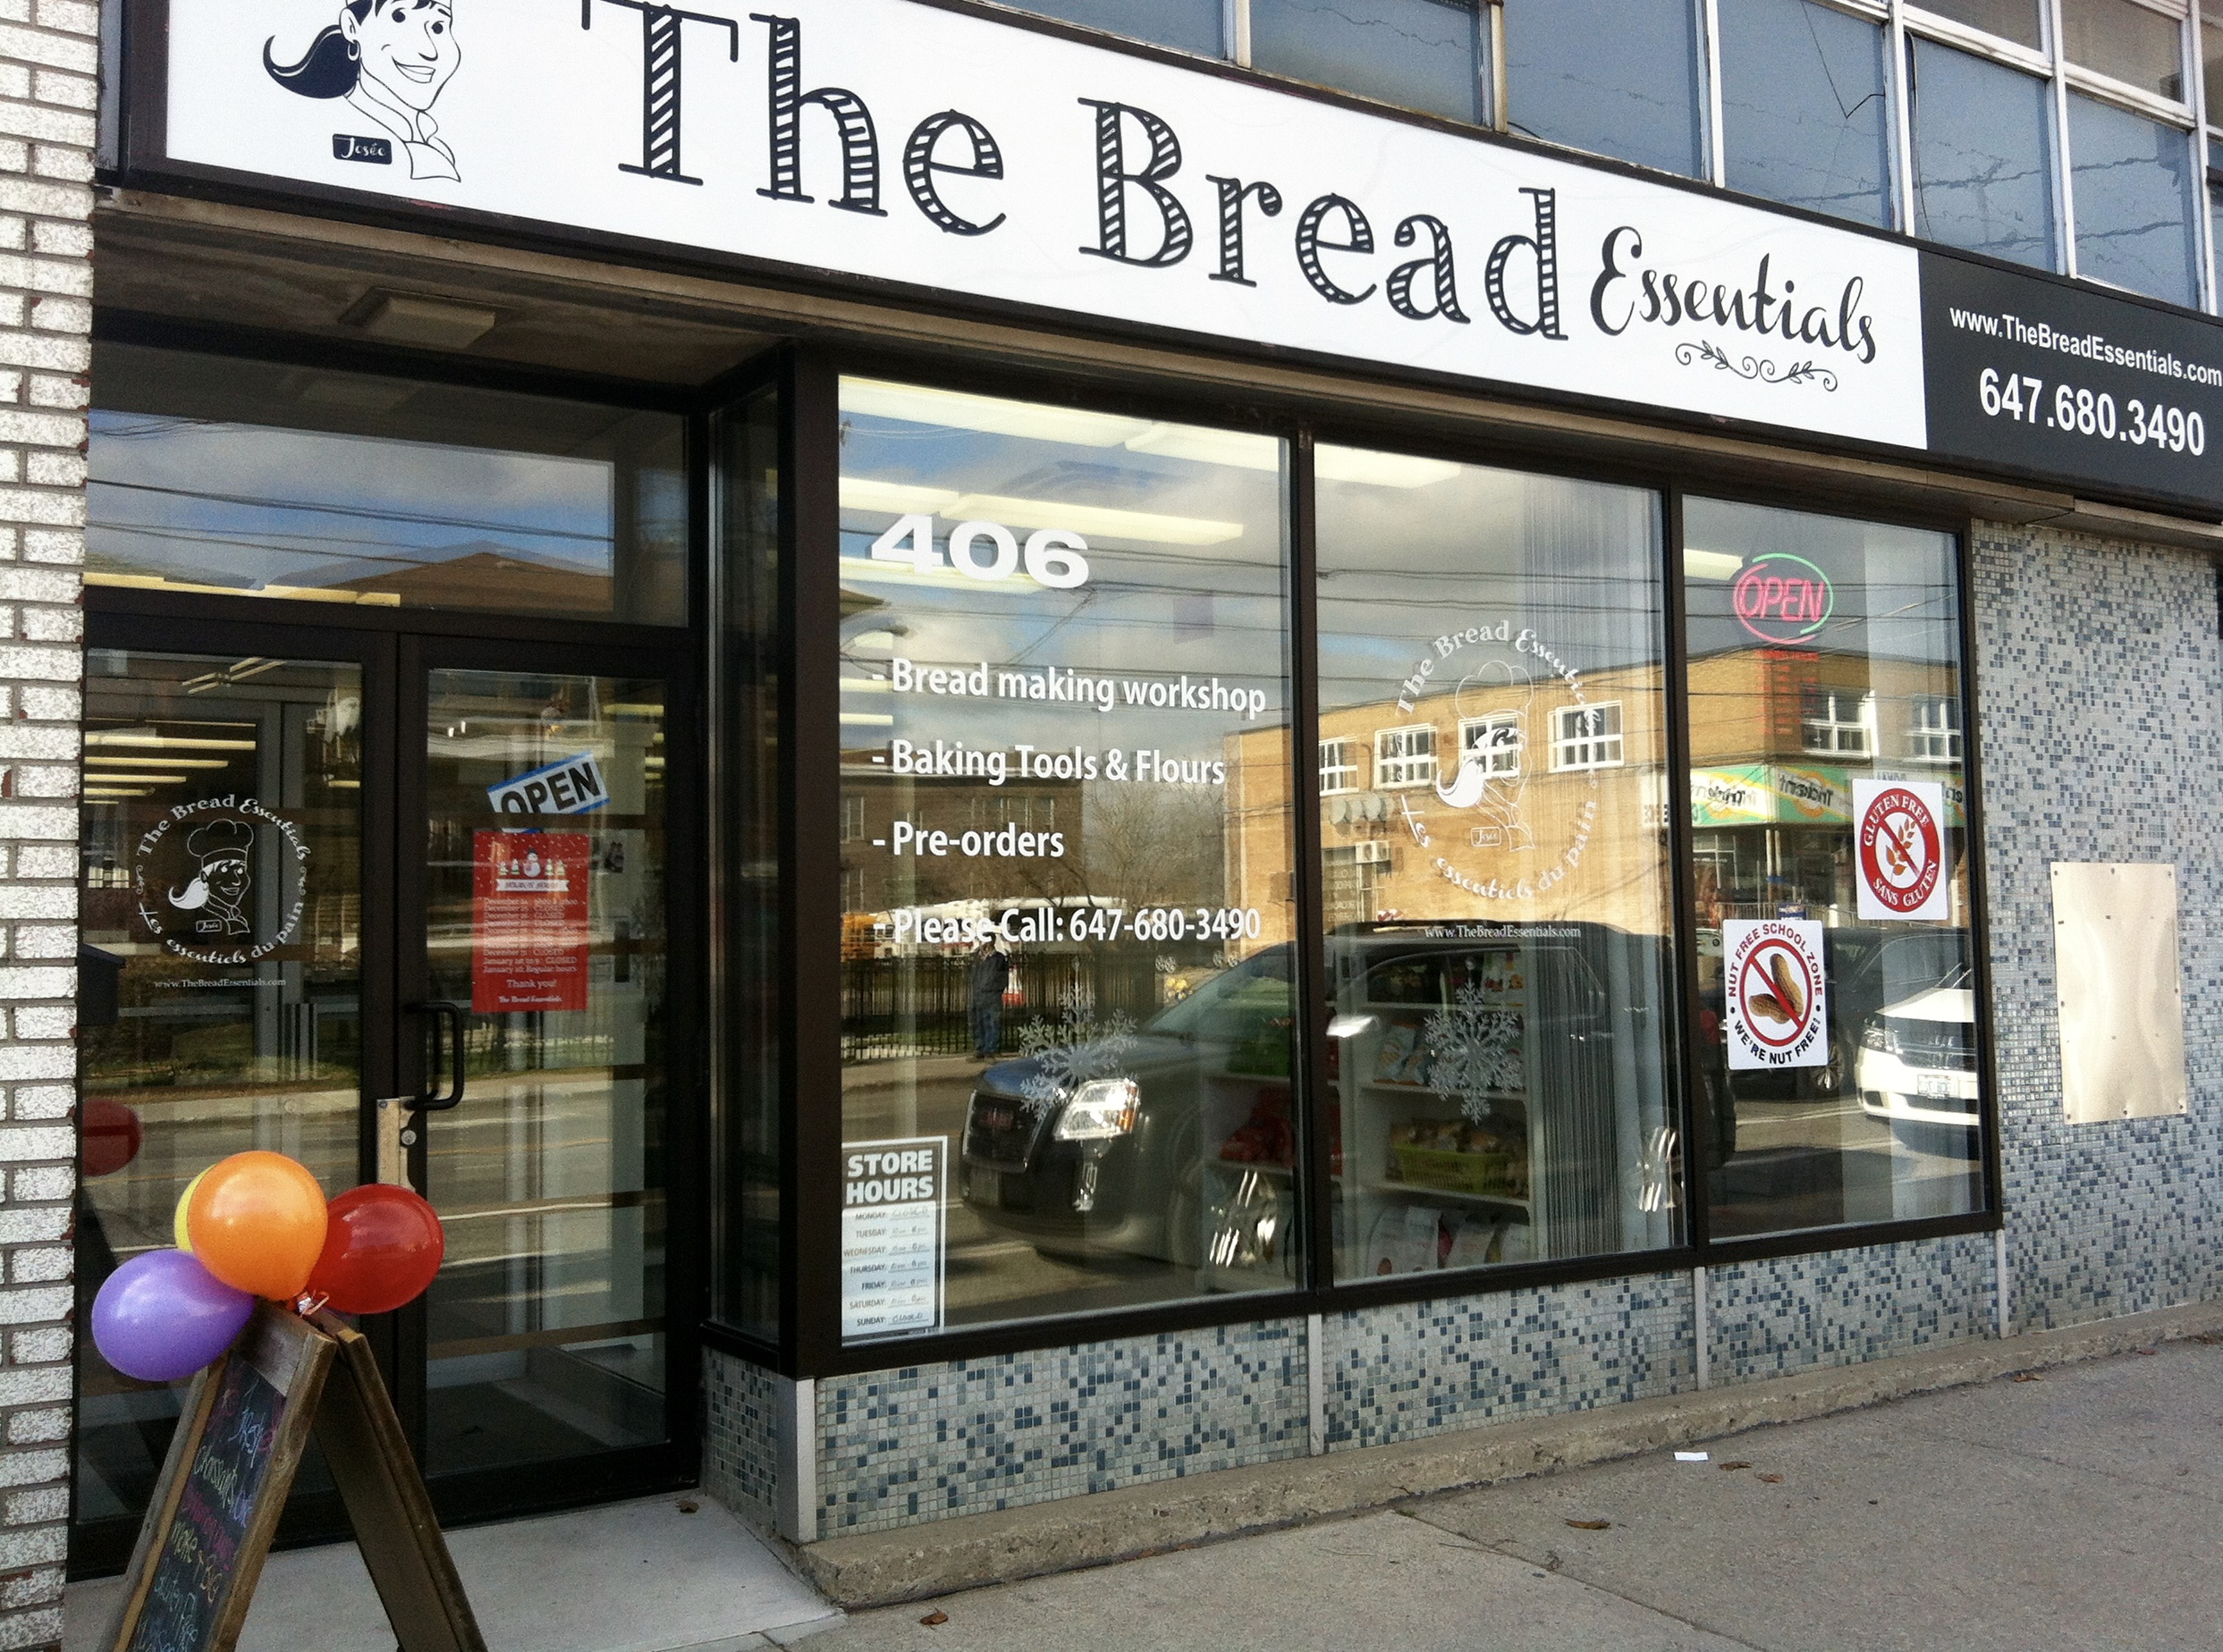 Find us at The Bread Essentials